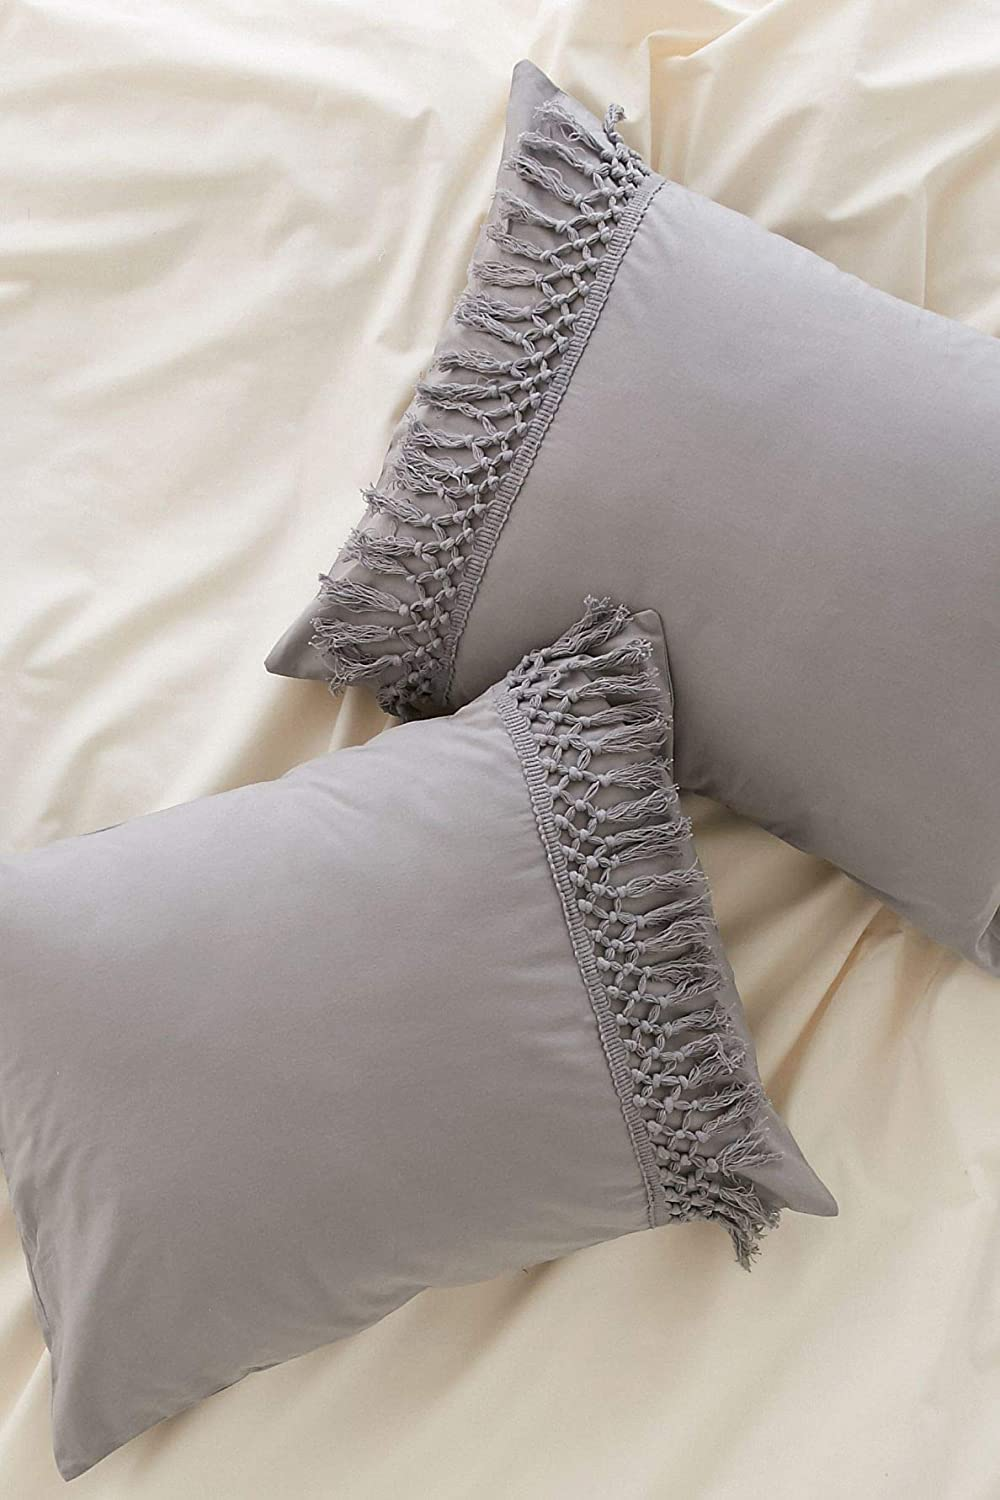 Flber Pillowcases Gray Tassel Sham Cotton Pillow Covers,Set of 2 18.9in x29.1in Gray Queen